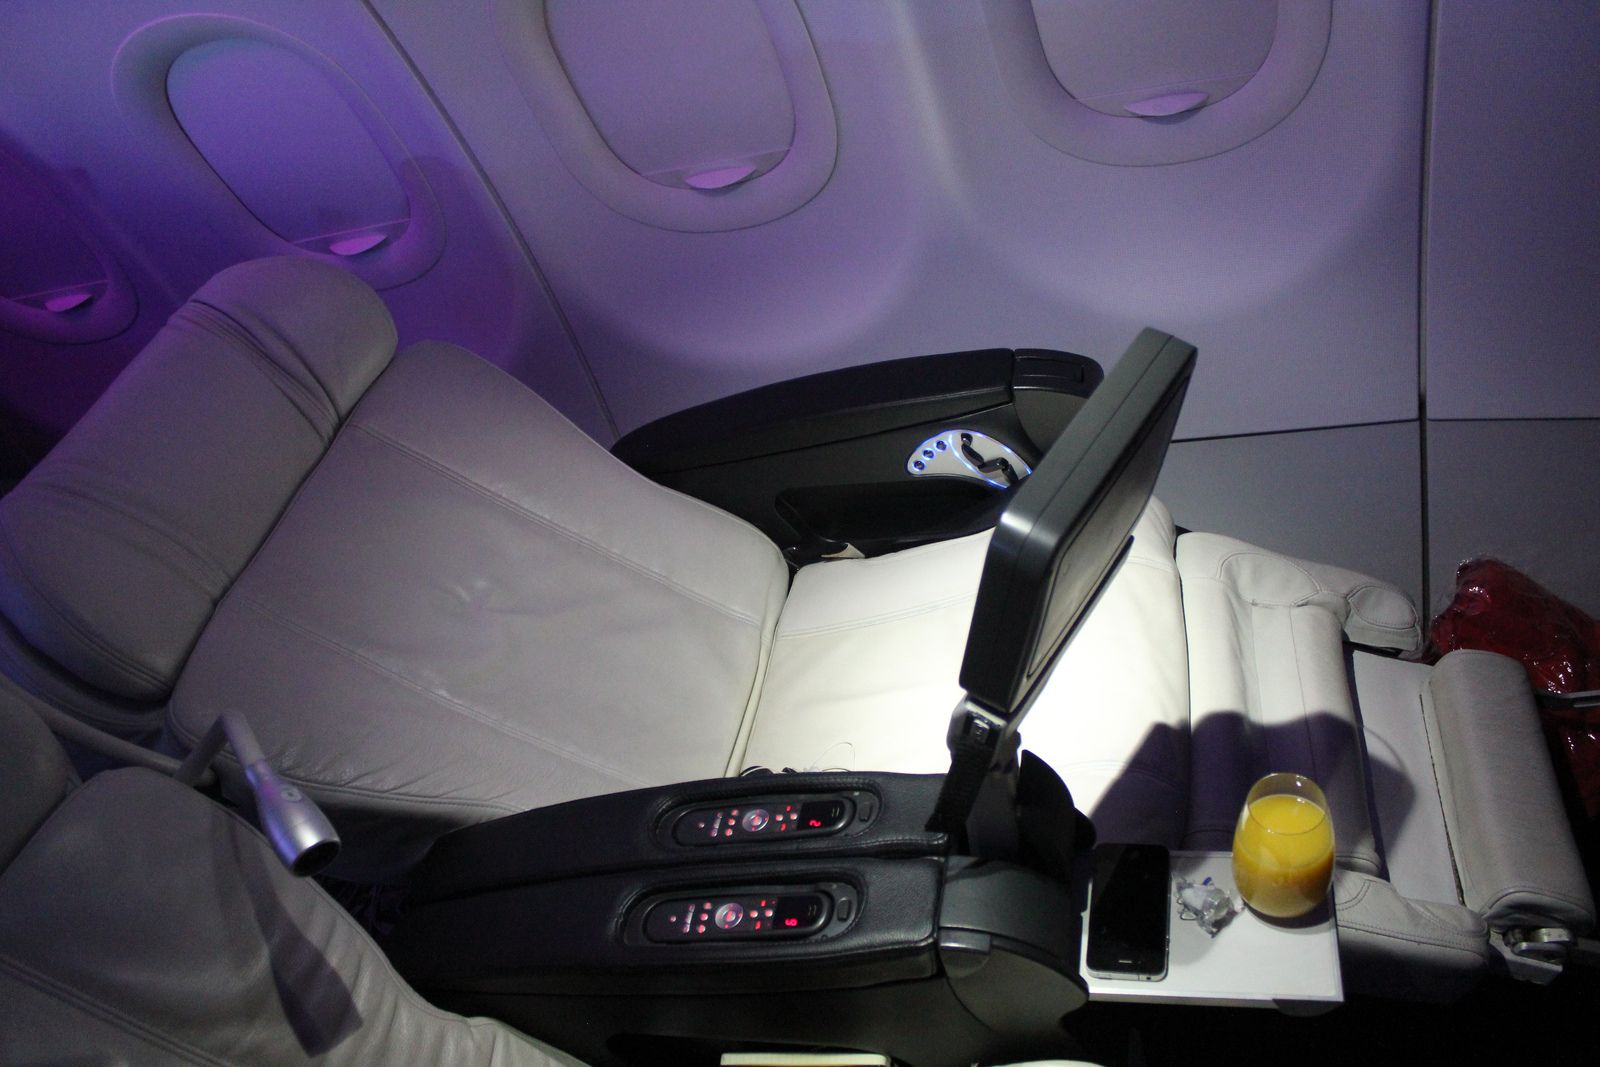 Virgin America Best Domestic First Cl Product Hands Down